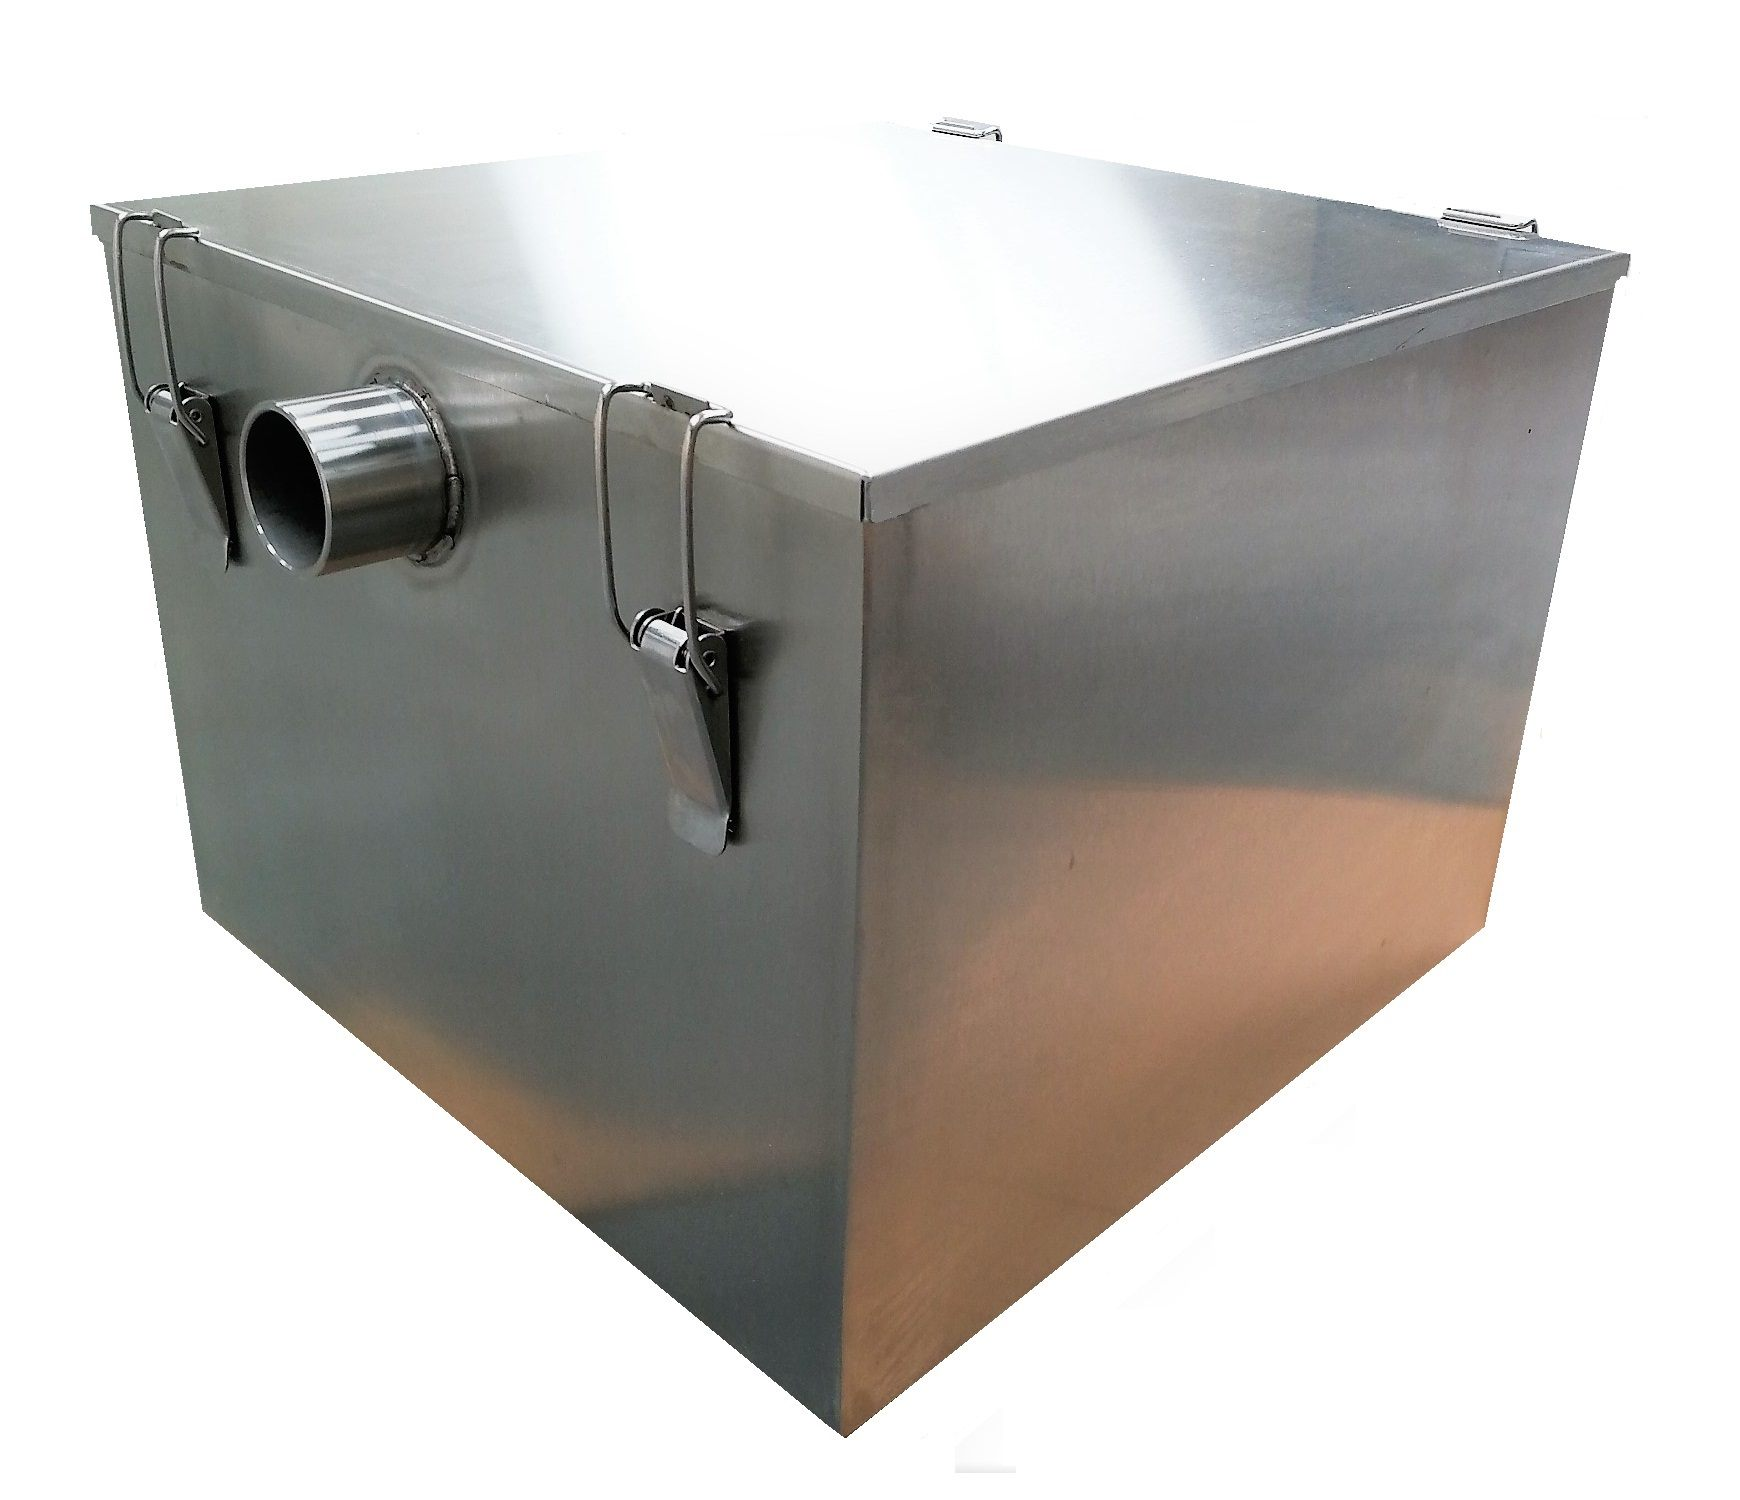 Industrial Kitchen Grease Trap: 110 Ltr Stainless Steel Grease Trap